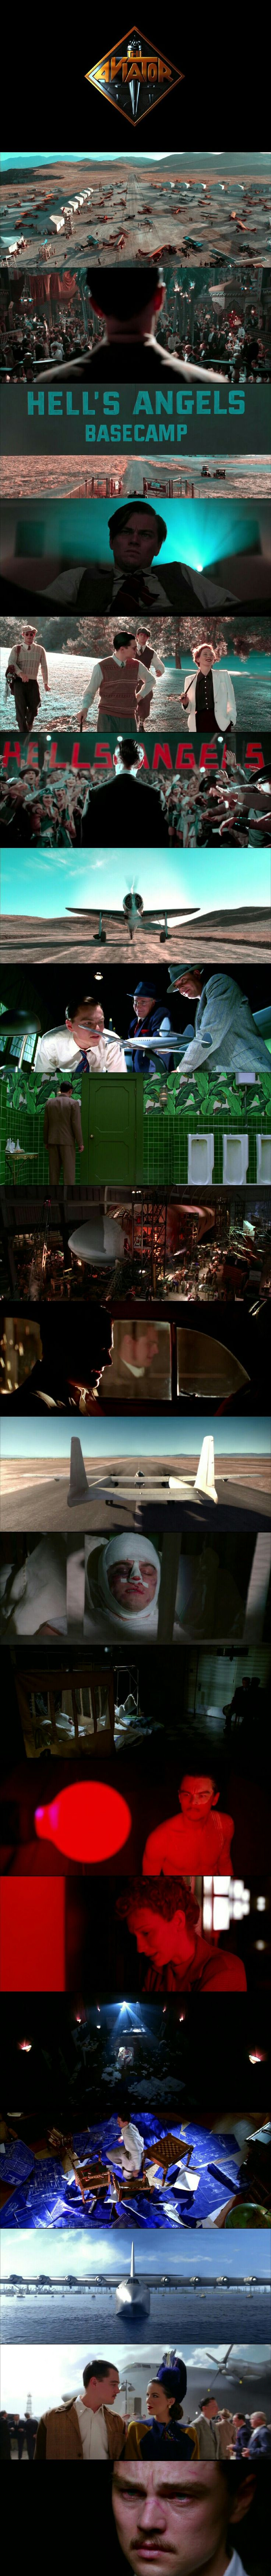 The Aviator(2004) Directed by Martin Scorsese. Cinematography by Robert Richardson.